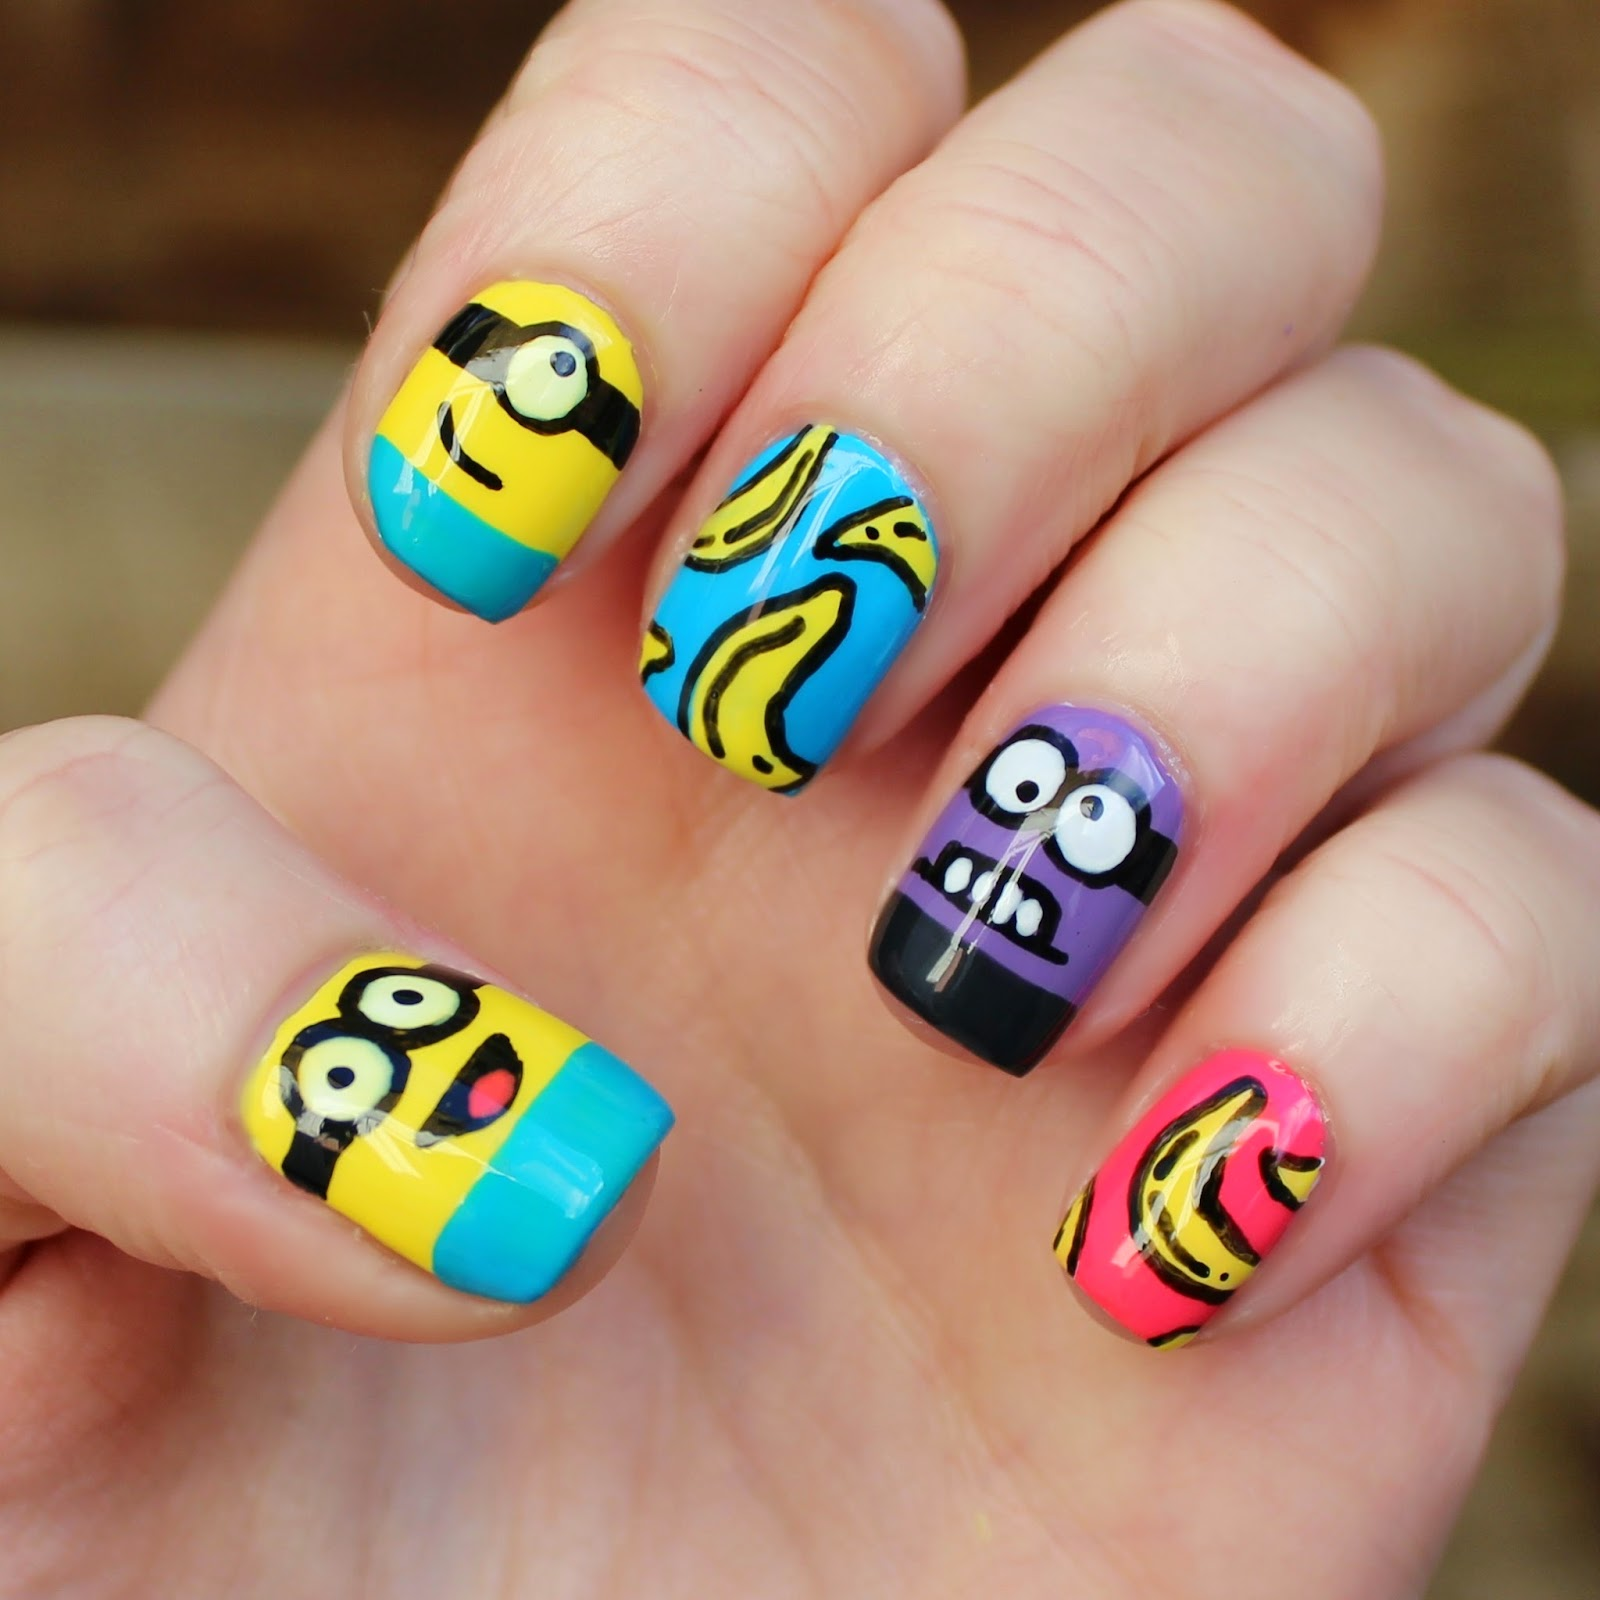 Dahlia Nails: Minion Rush Nail Design